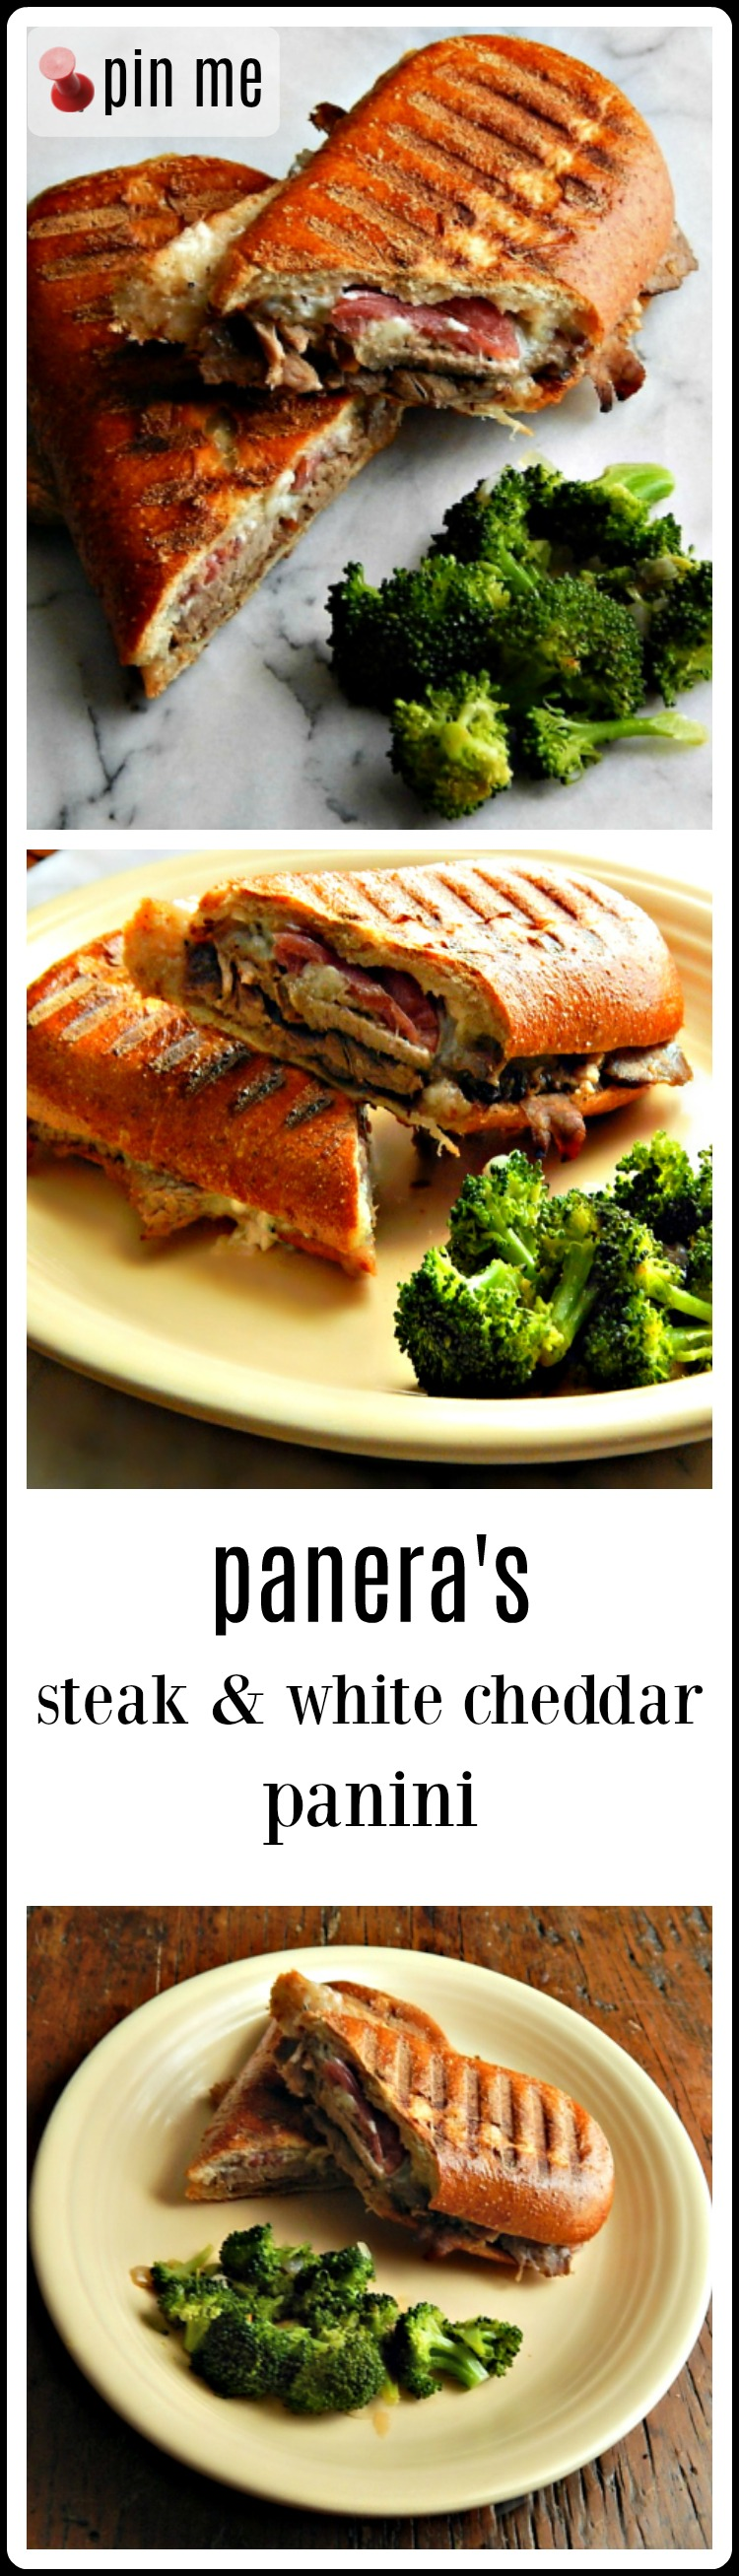 Panera Copycat Steak & White Cheddar Panini. These are great! I liked them BETTER than Paneras.n #CopycatPaneraSteak&WhiteCheddarPanini #PaneraSteakPanini #PaneraSteakandWhiteCheddar Panini